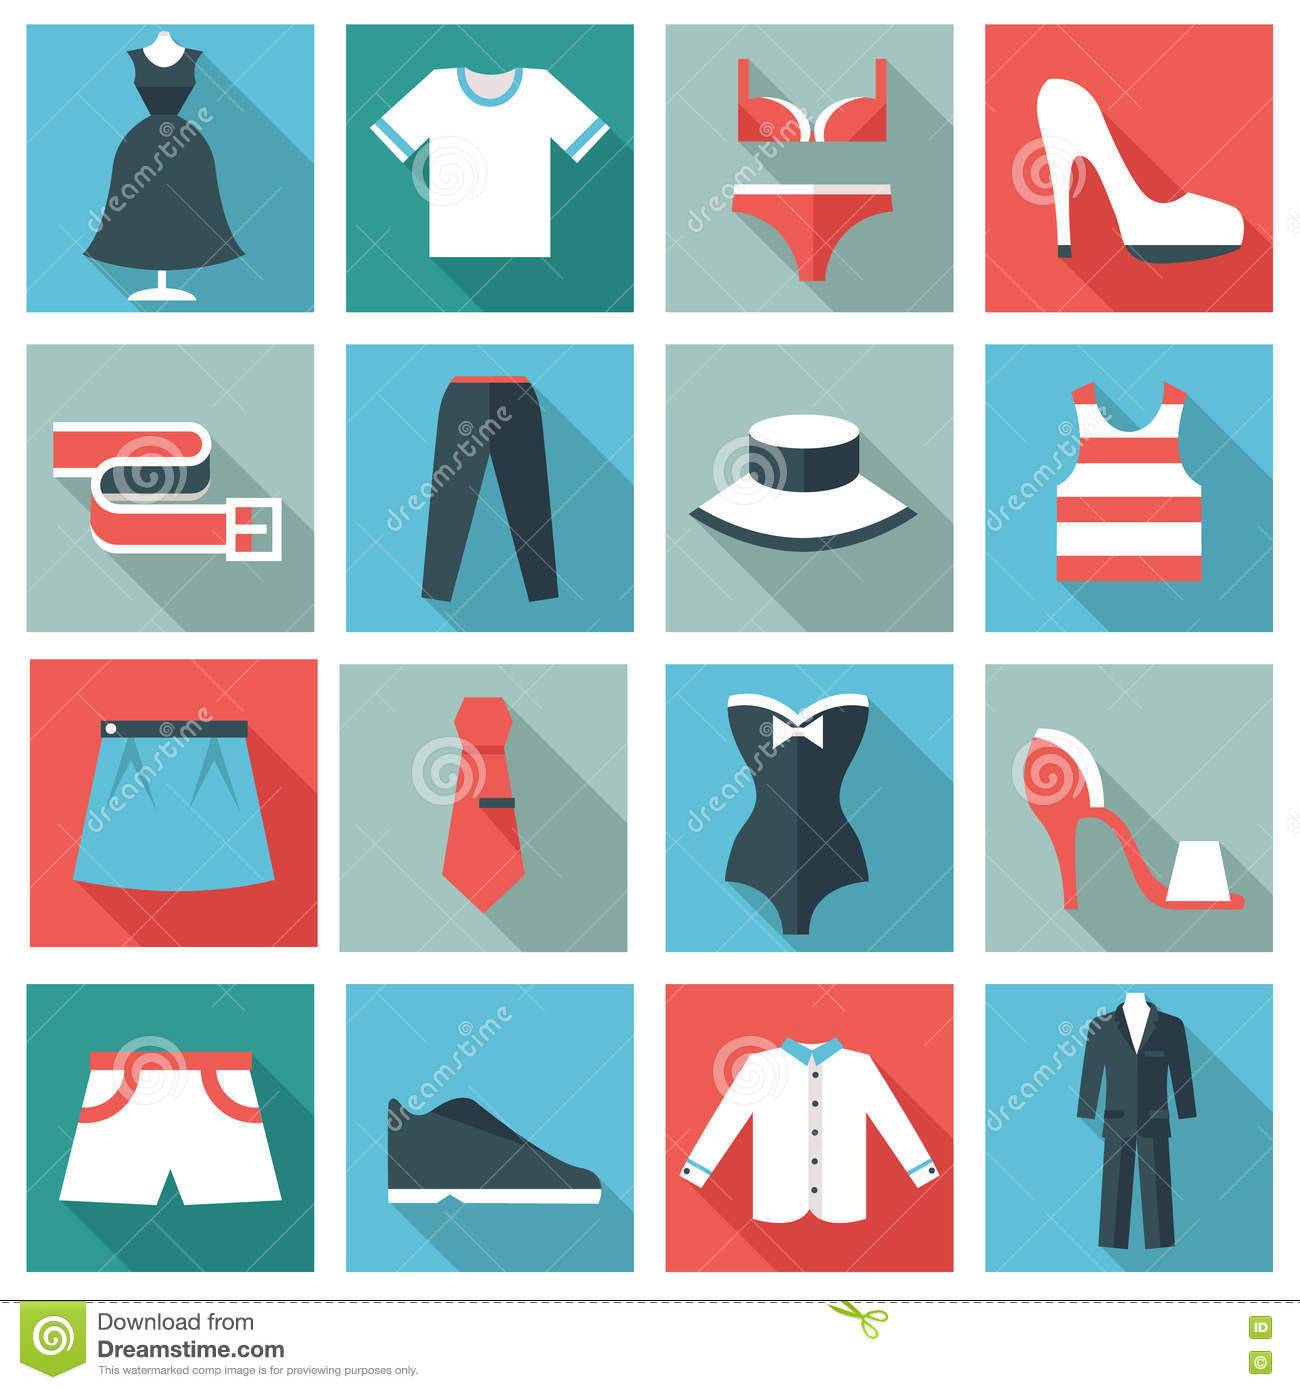 ad75ea5f22 Clothing icons stock vector. Illustration of briefs